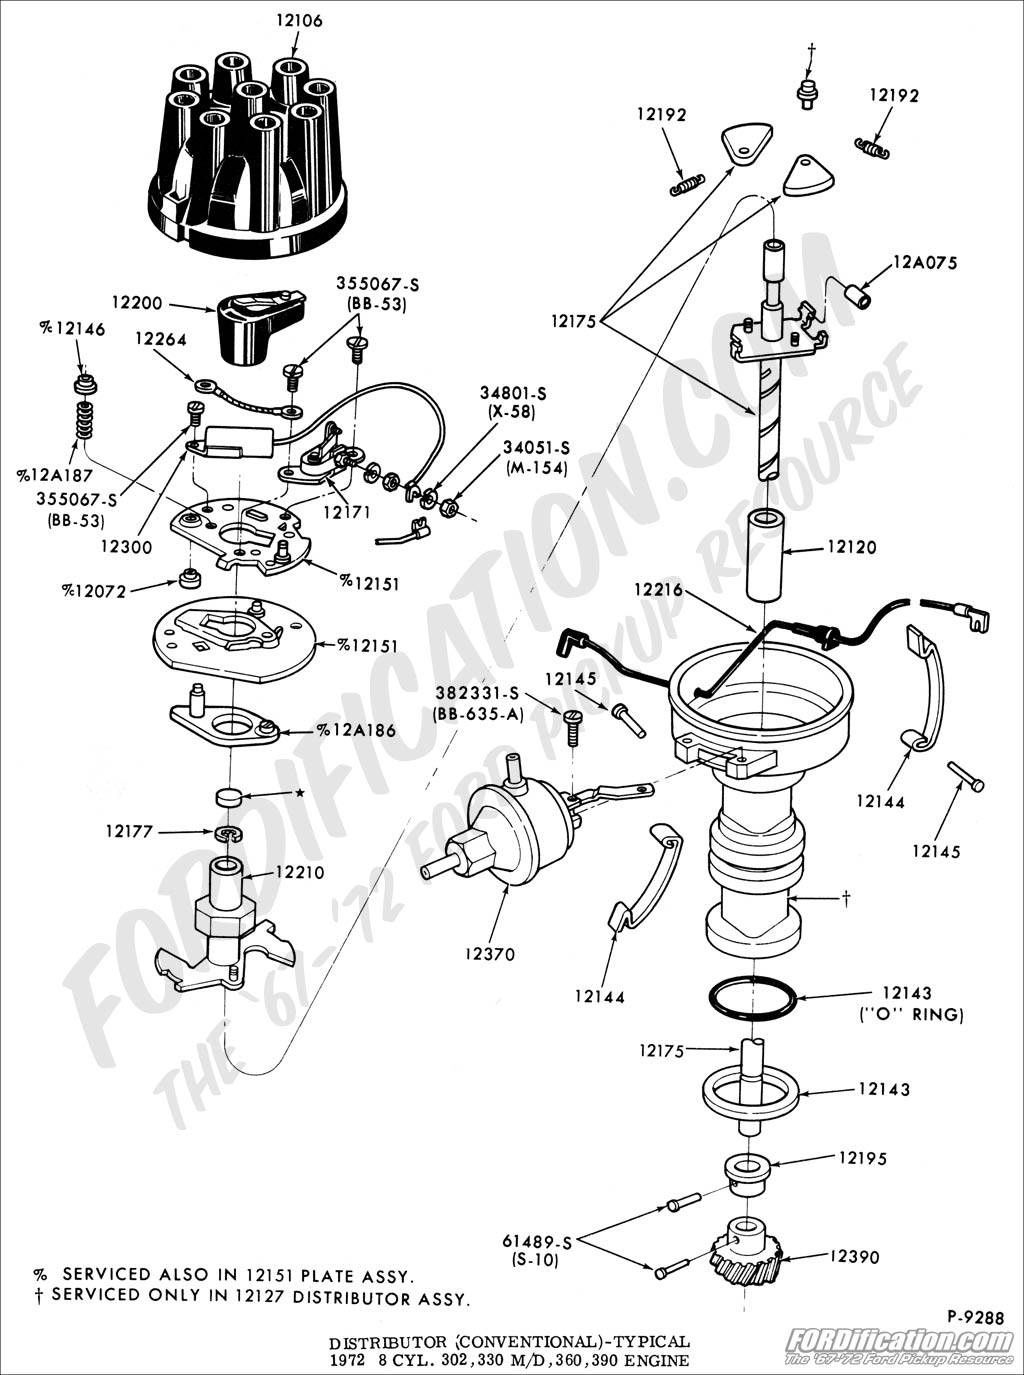 ford distributor part diagram repair guides vacuum diagrams vacuum HEI Distributor Wiring Order medium resolution of industrial ford 460 wiring diagram wiring diagram detailed ford 460 distributor parts diagram